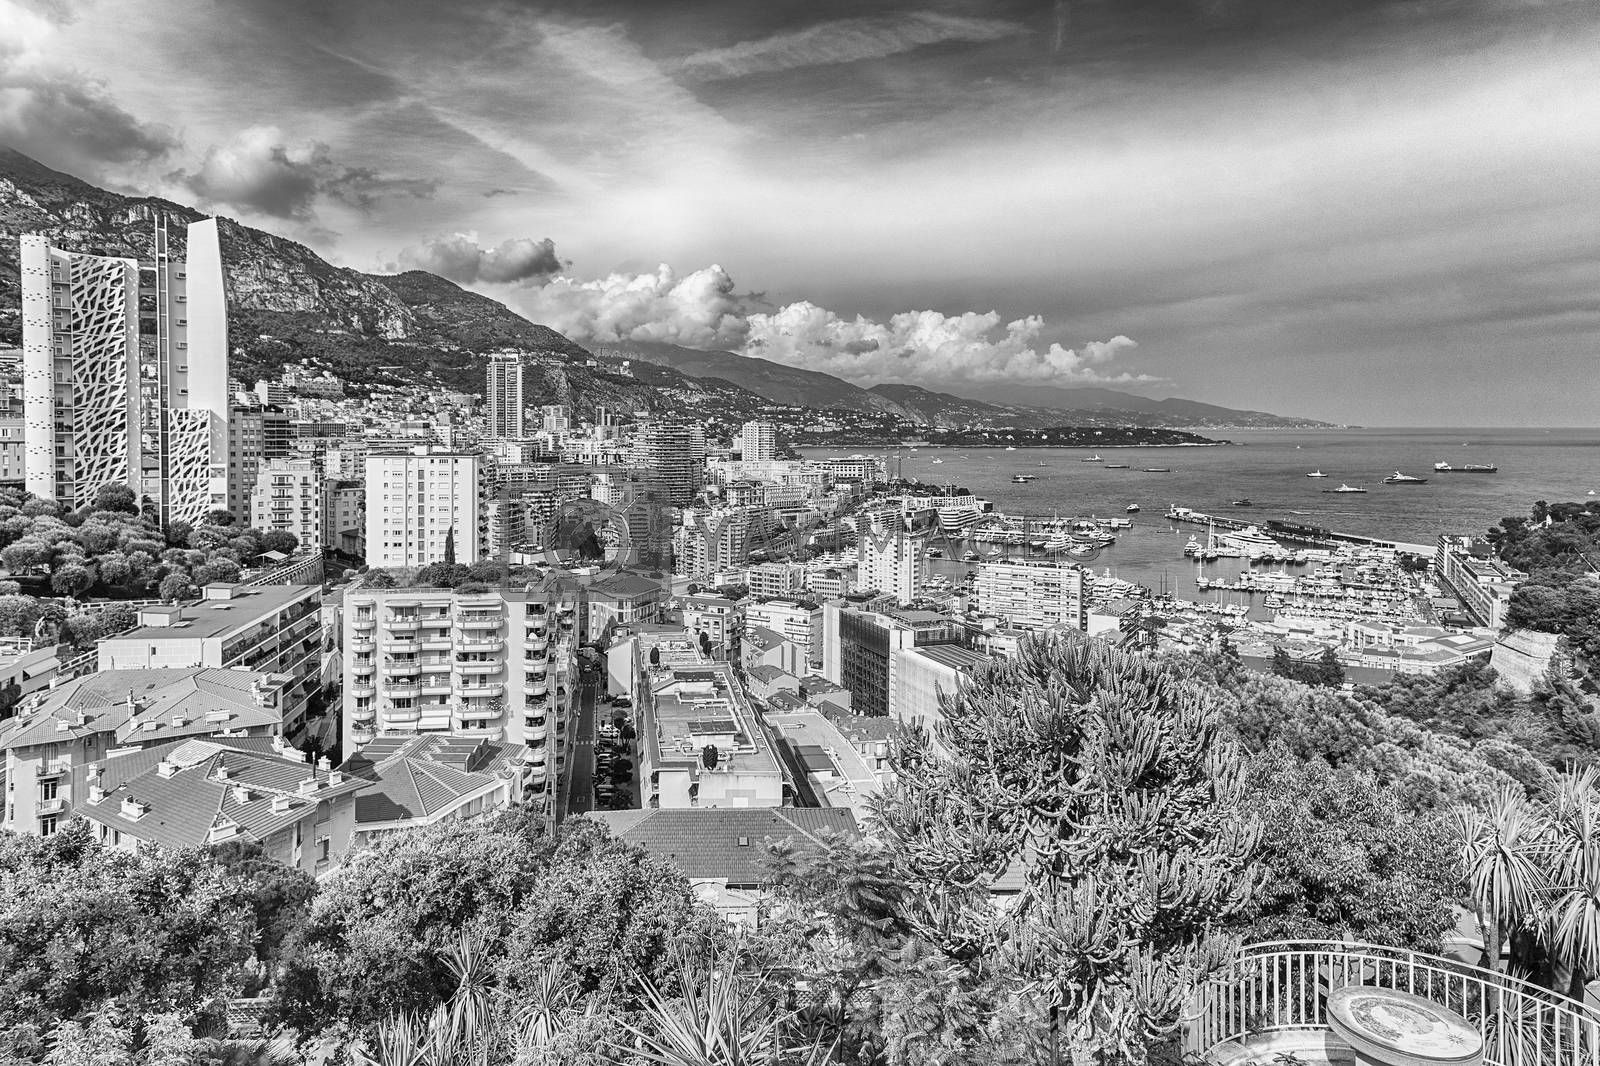 View over Port Hercules in La Condamine district, city centre and harbour of Monte Carlo, Cote d'Azur, Principality of Monaco, iconic landmark of the French Riviera